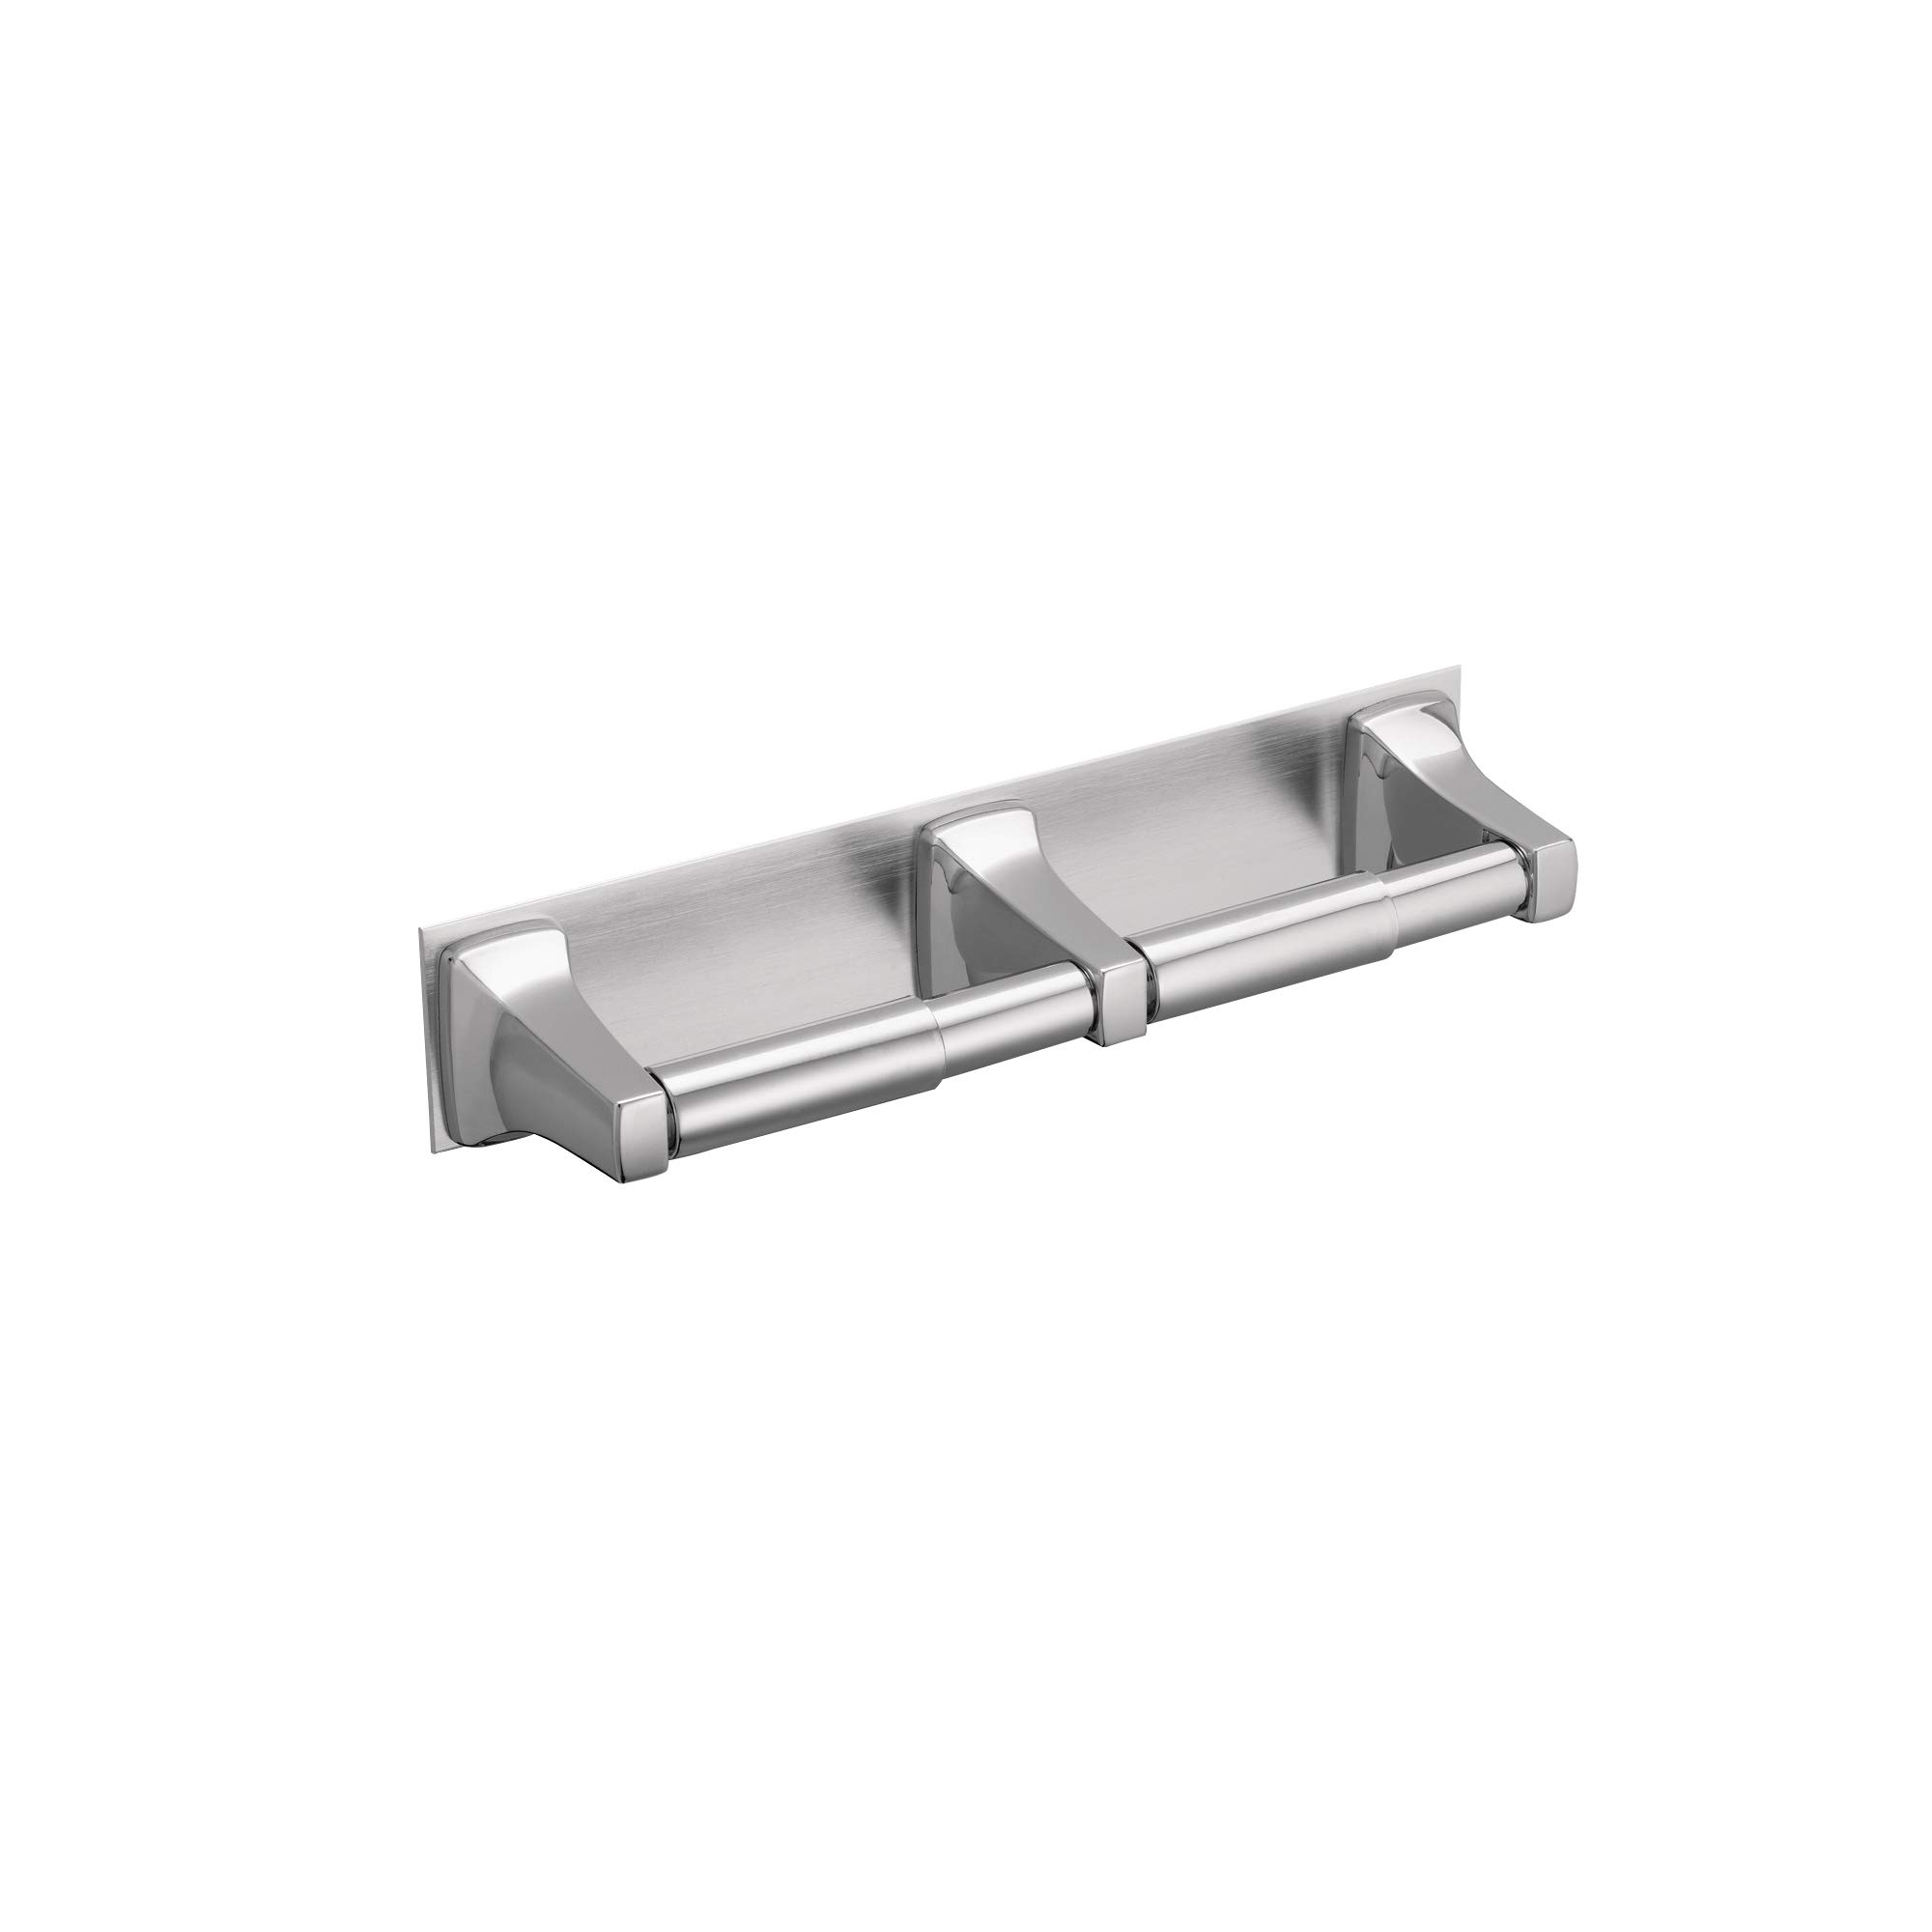 Moen R5580 Commercial Donner Collection In-Line Double Roll Toilet Paper Holder, Chrome by Moen